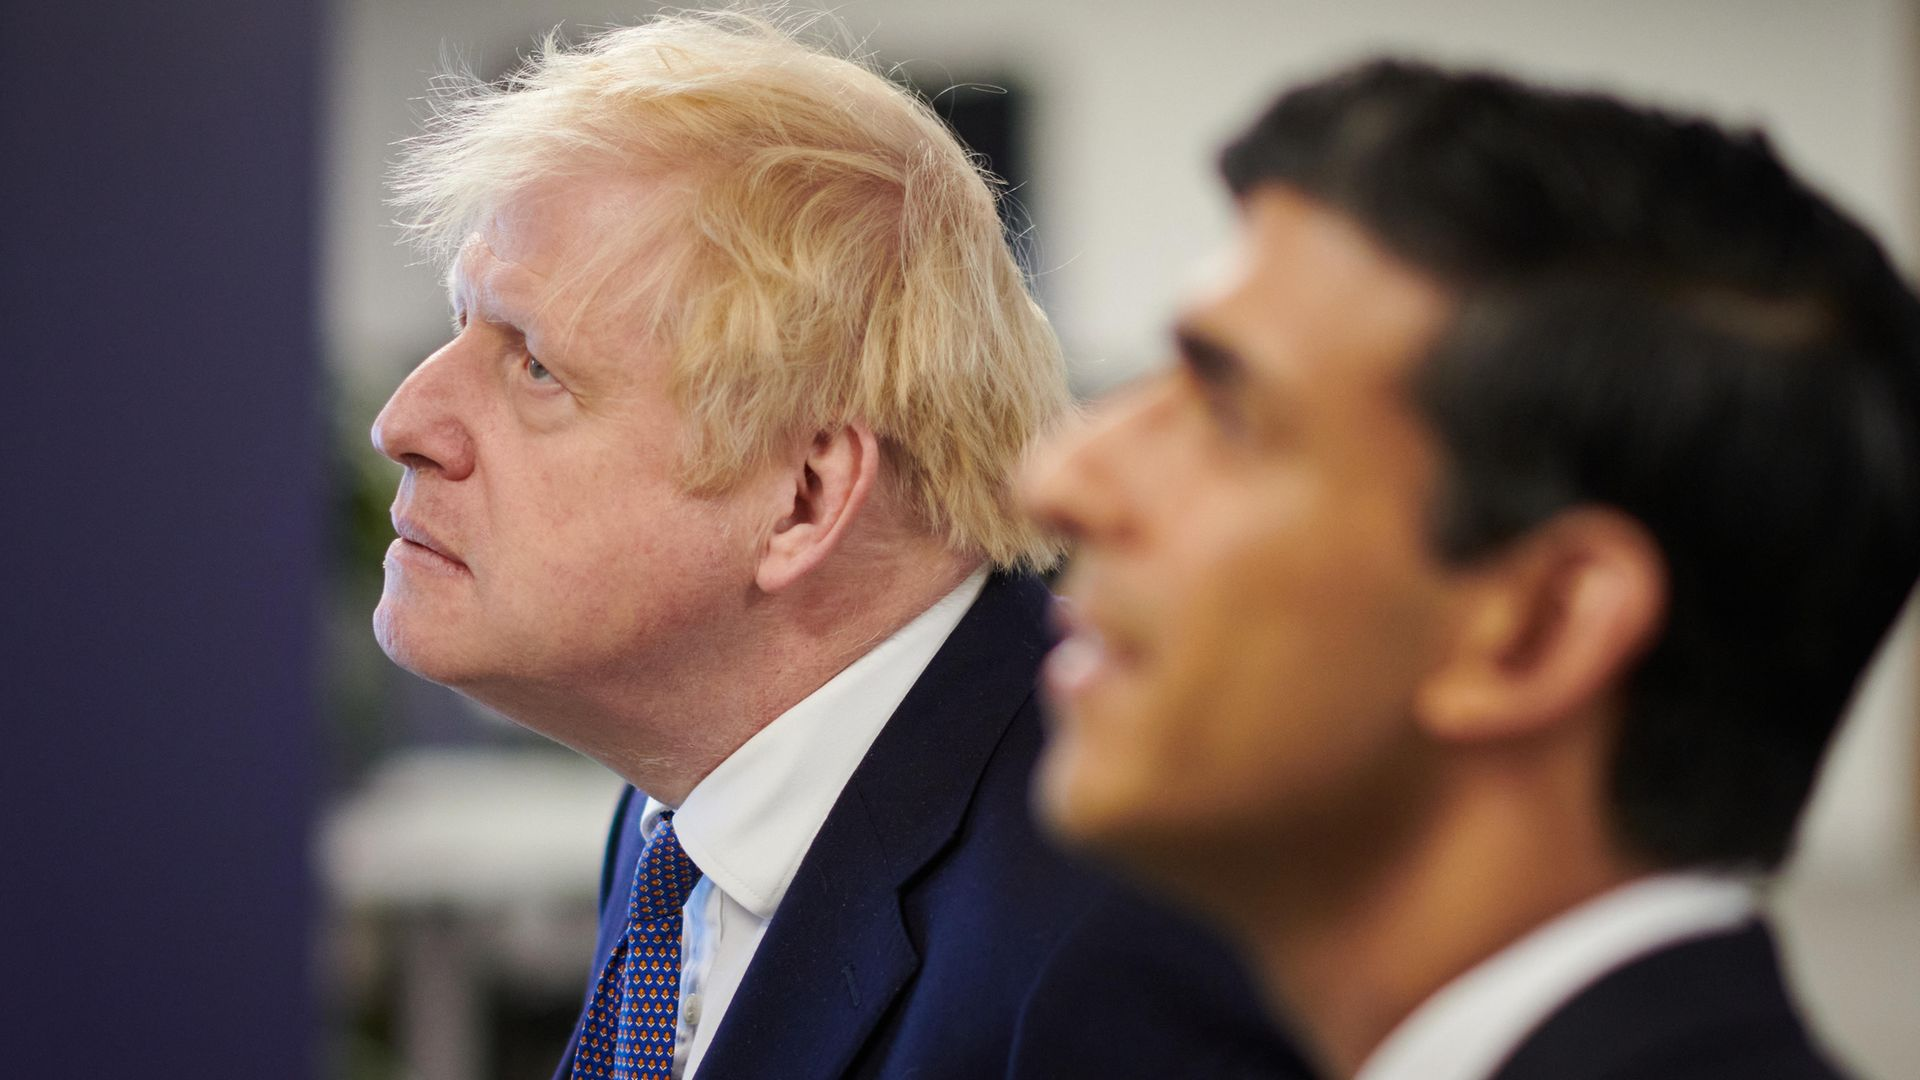 Prime minister Boris Johnson and chancellor Rishi Sunak during a visit to the headquarters of Octopus Energy in London - Credit: PA